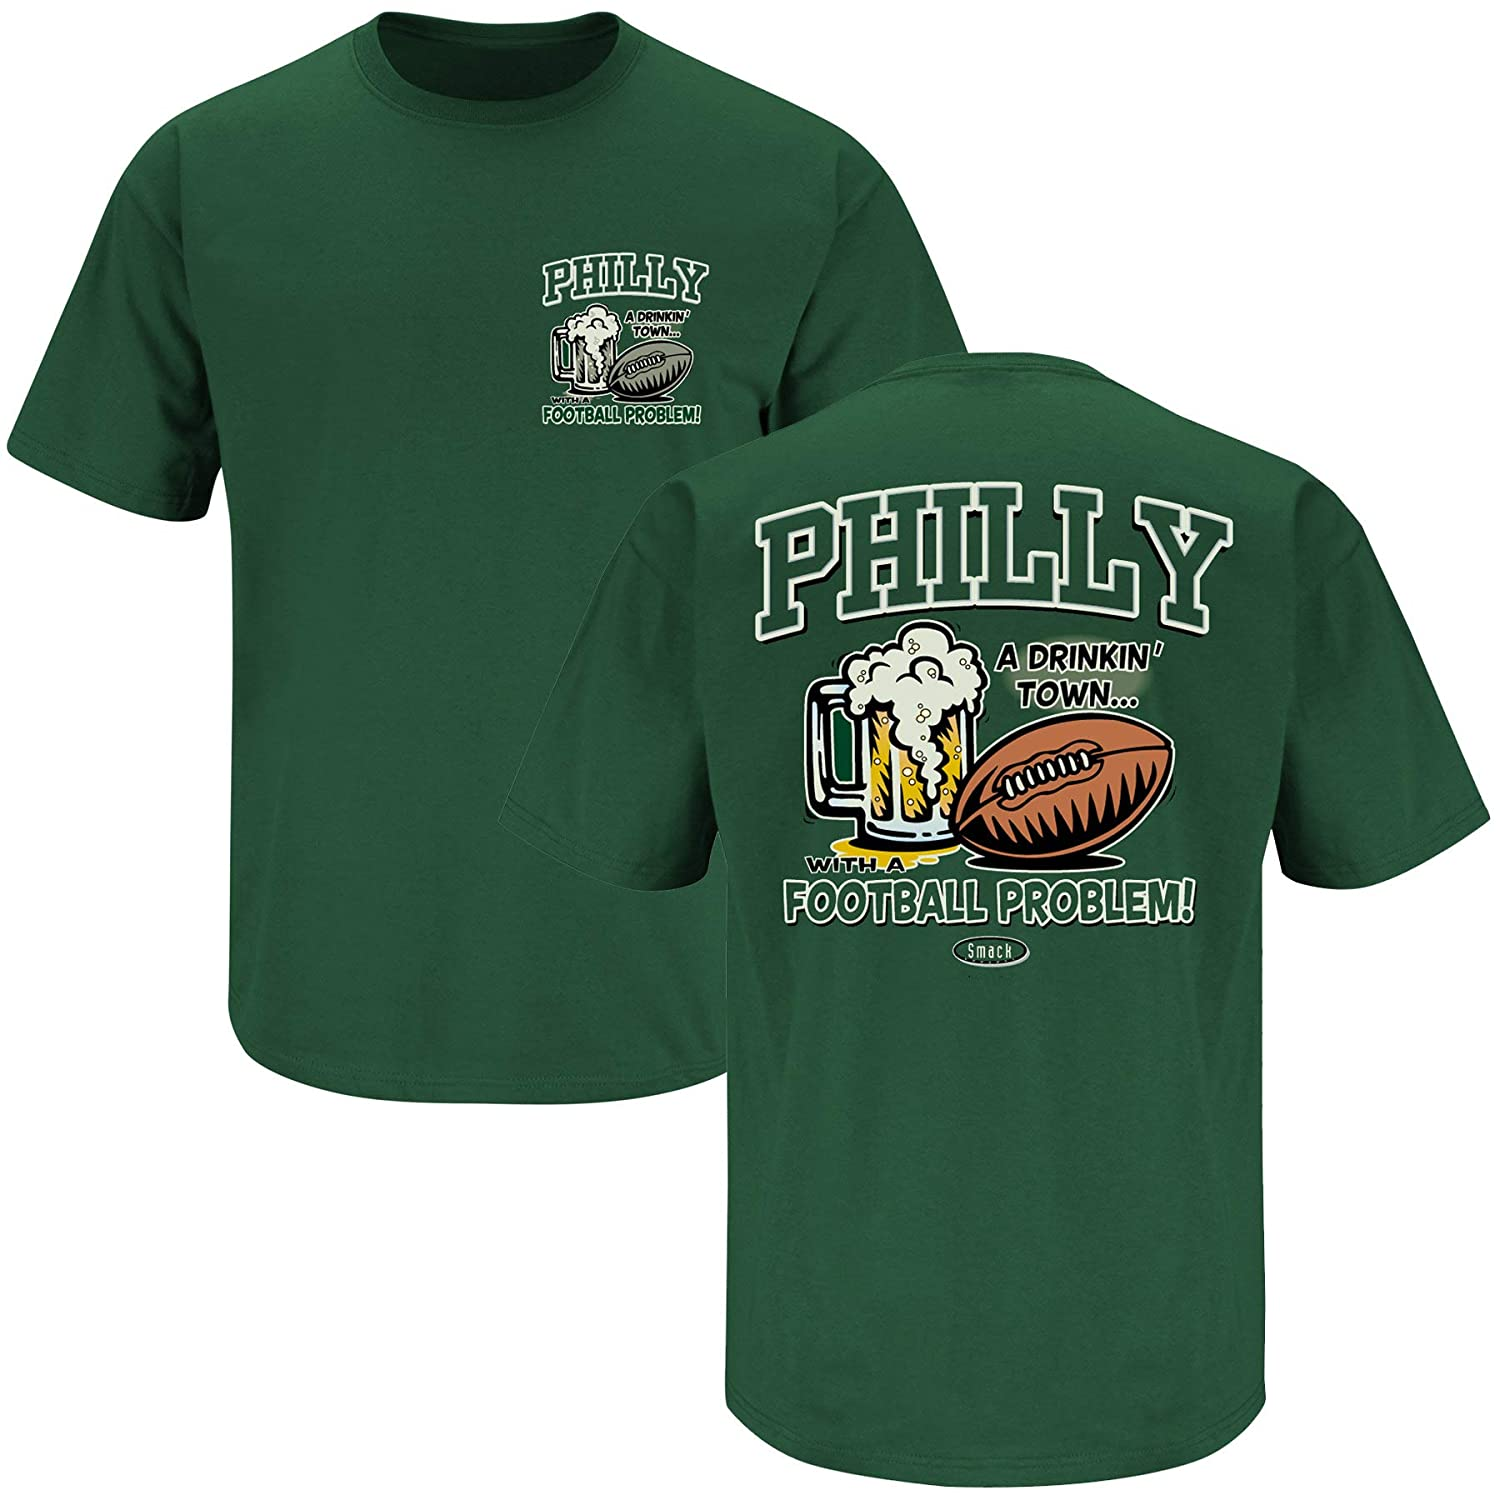 88a999167d5 Amazon.com : Smack Apparel Philadelphia Football Fans. Philly Drinking Town  With a Football Problem Green T-Shirt (Sm-5X) : Sports & Outdoors